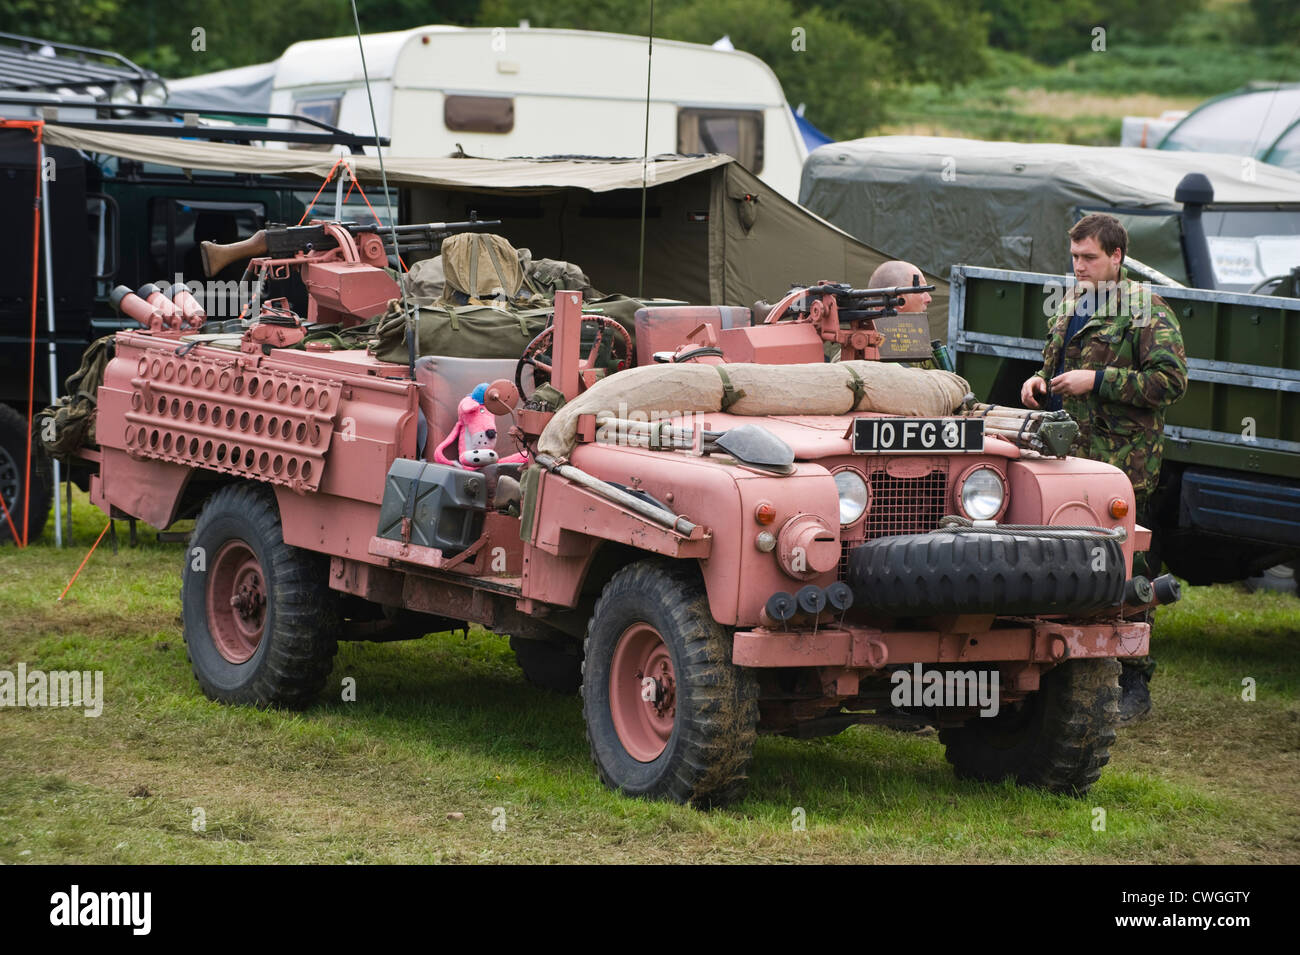 sale rover and panthers vehicle leisure sas pin at panther hobby pinterest land pink rear italeri landrover rovers plastic fg for cars kit